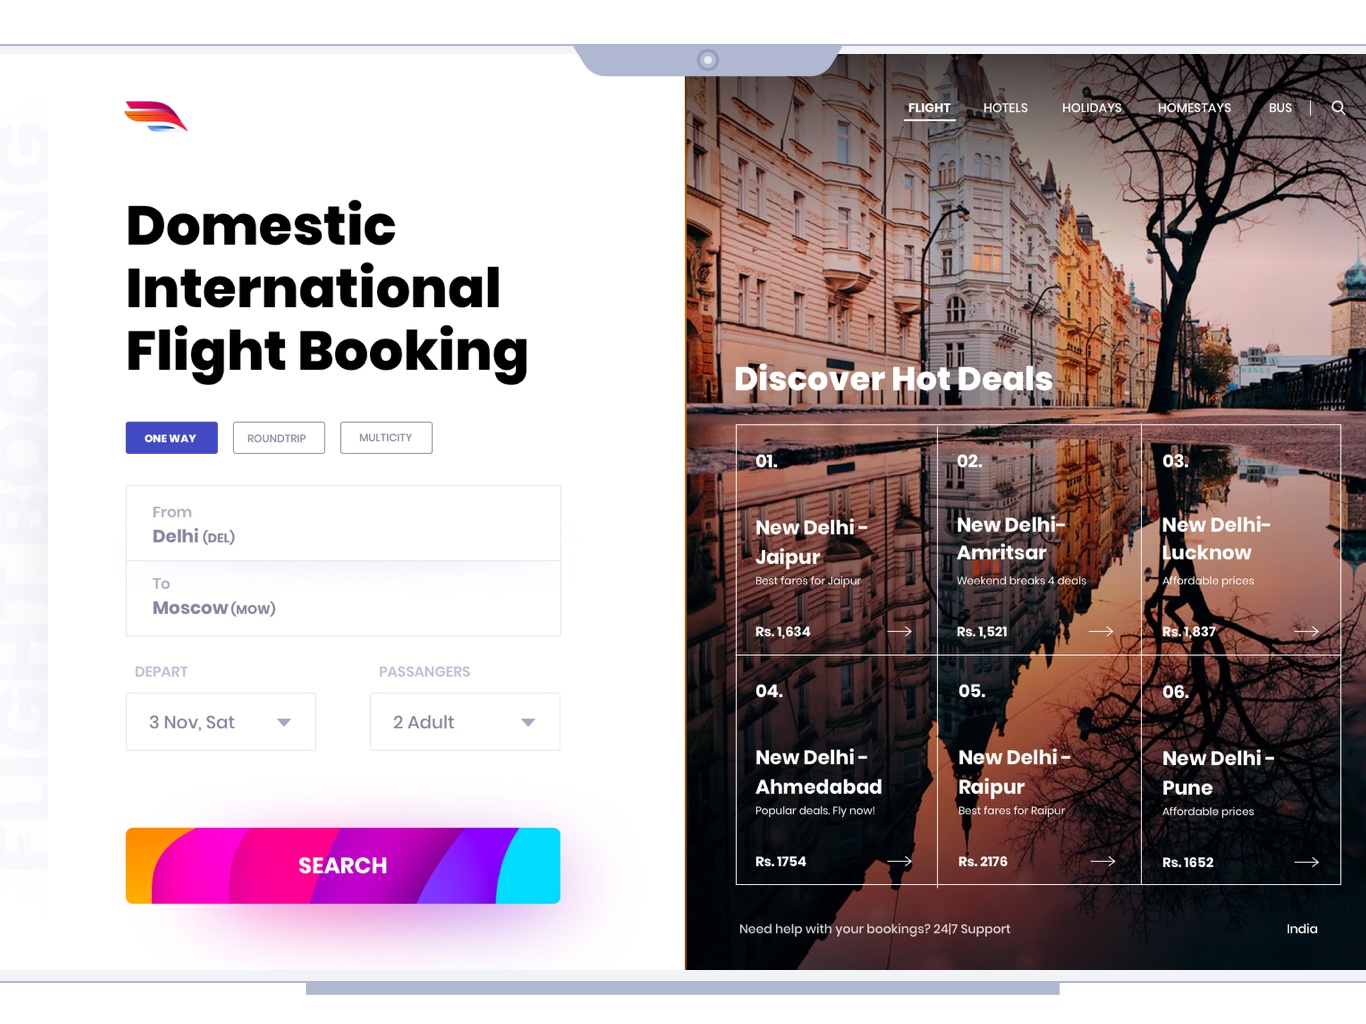 Flight Booking userinterfacedesign uidesign typography uitrends app userinterface design ux concept design ui offers search hot deals flight booking booking app flight